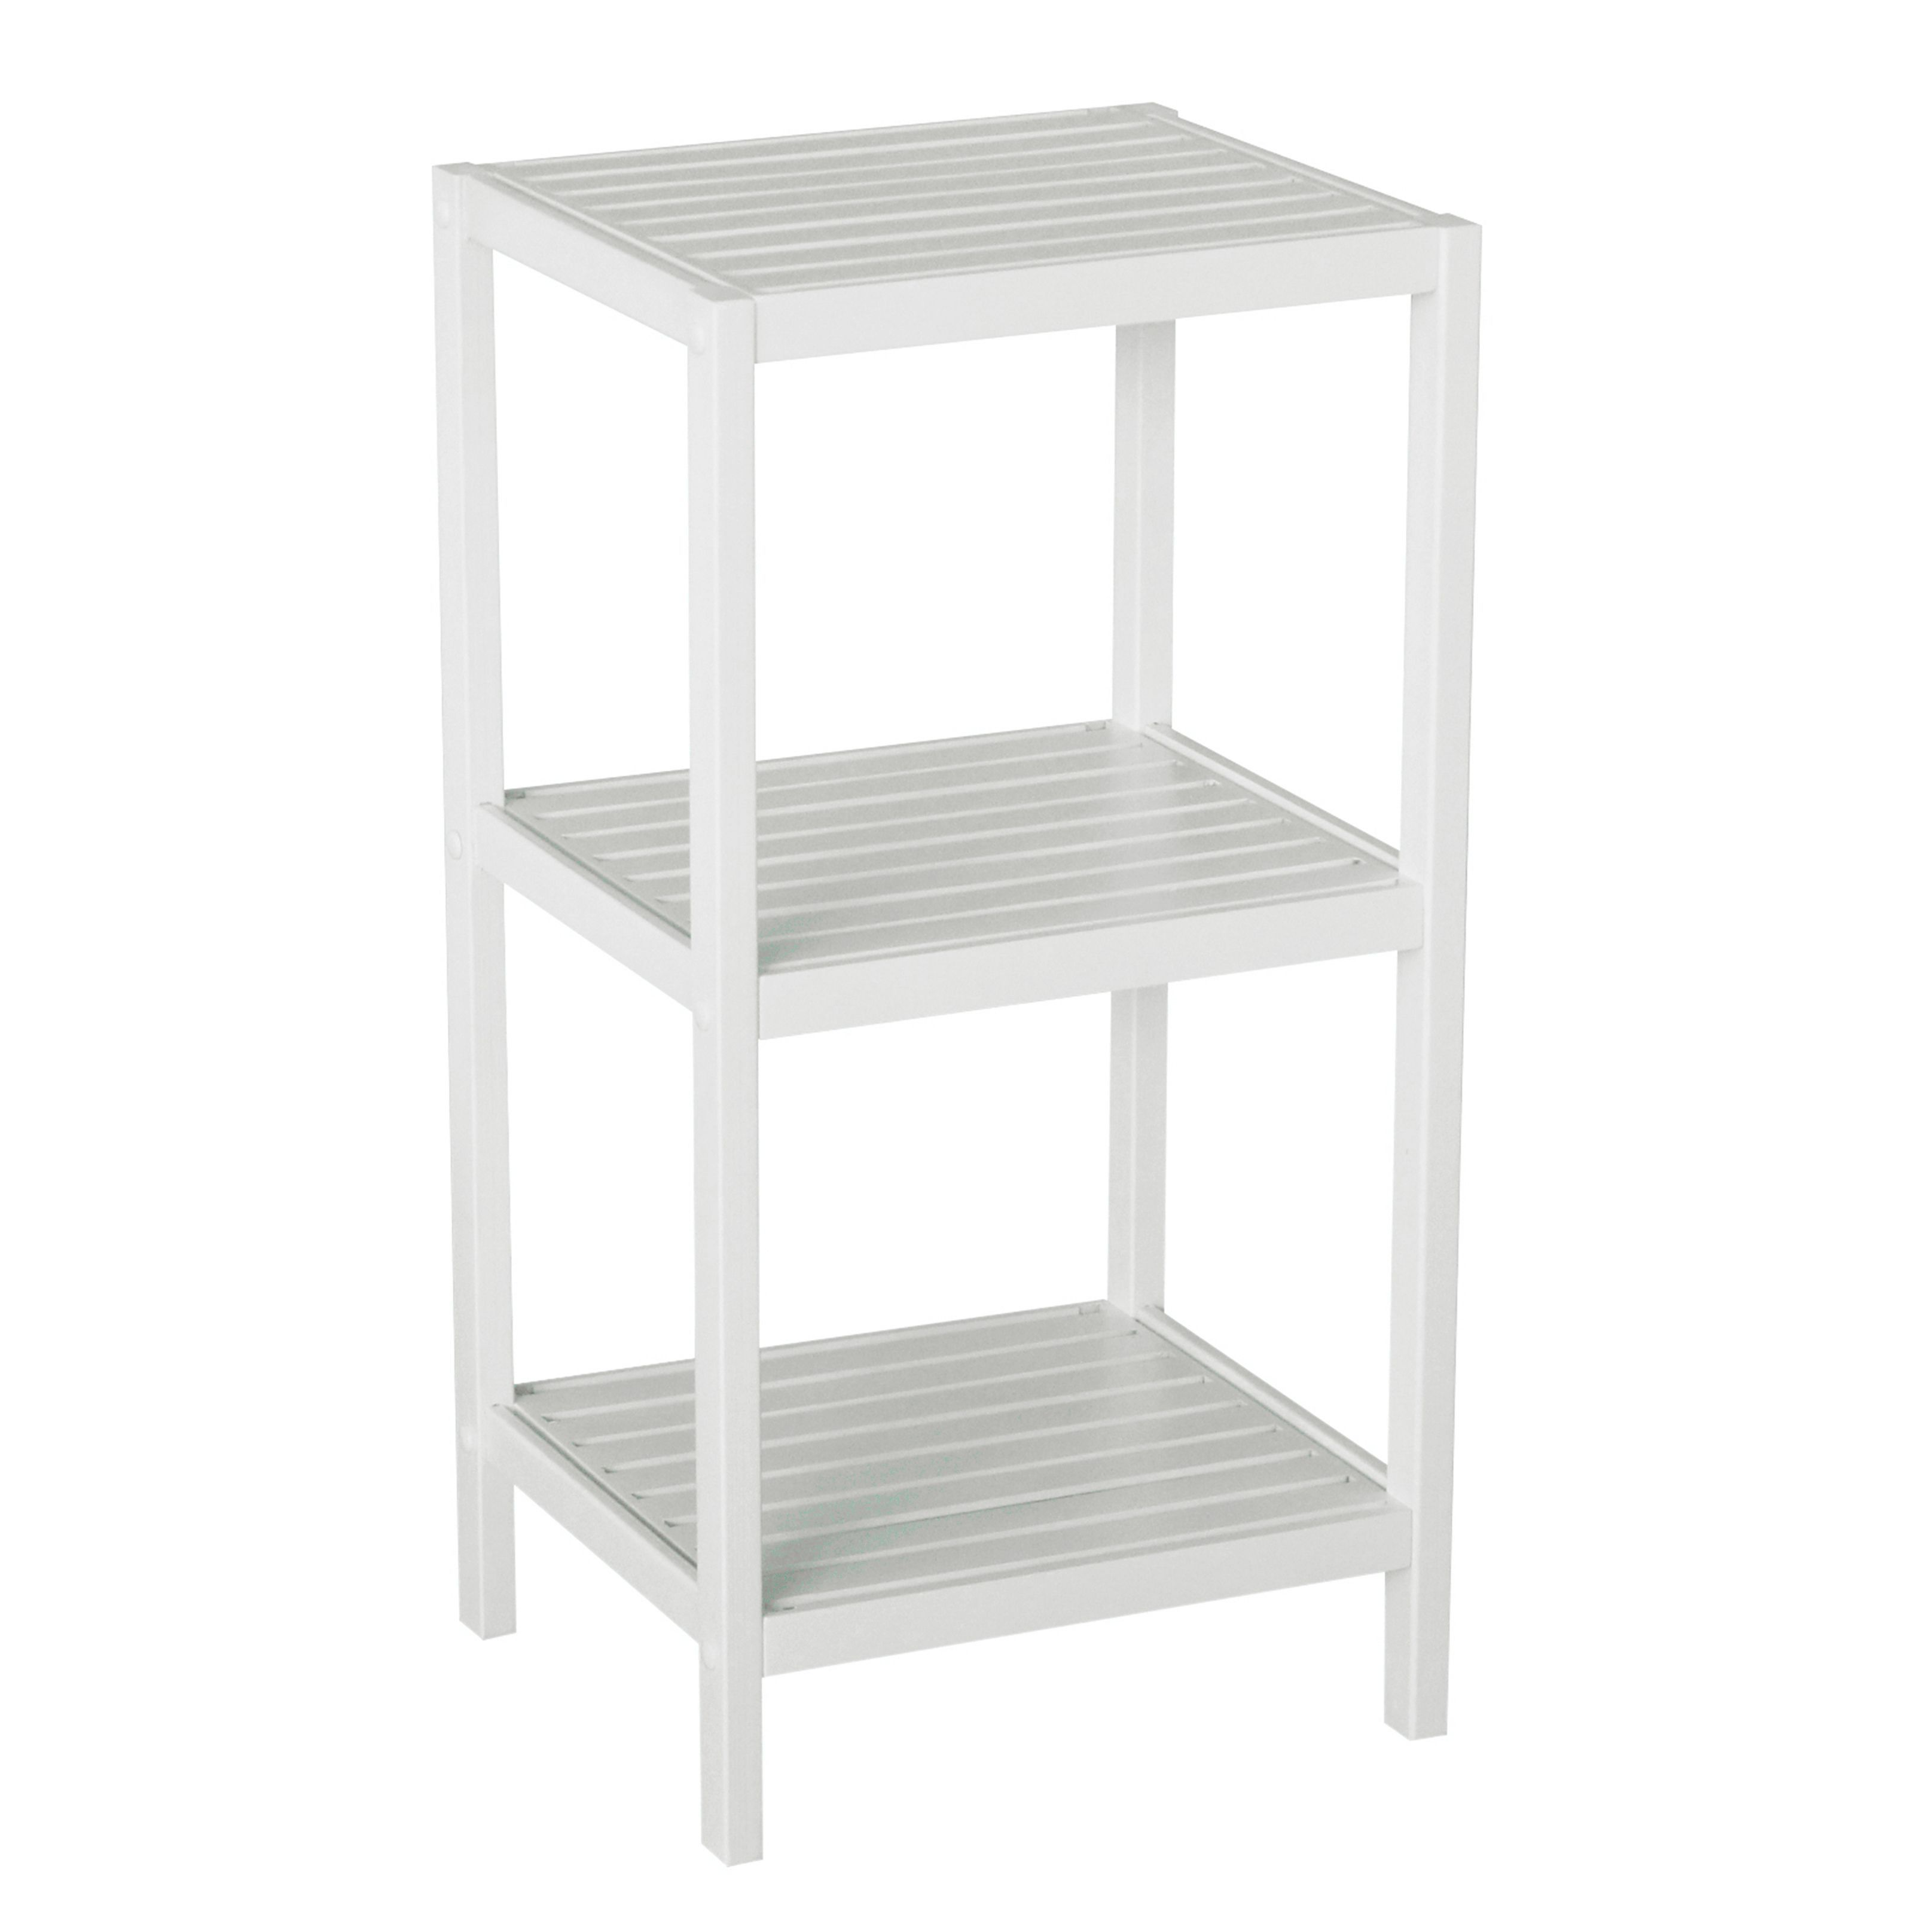 Bamboo Natural Spa 3-shelf Tower (Brown) | Tower, Spa and Shelves